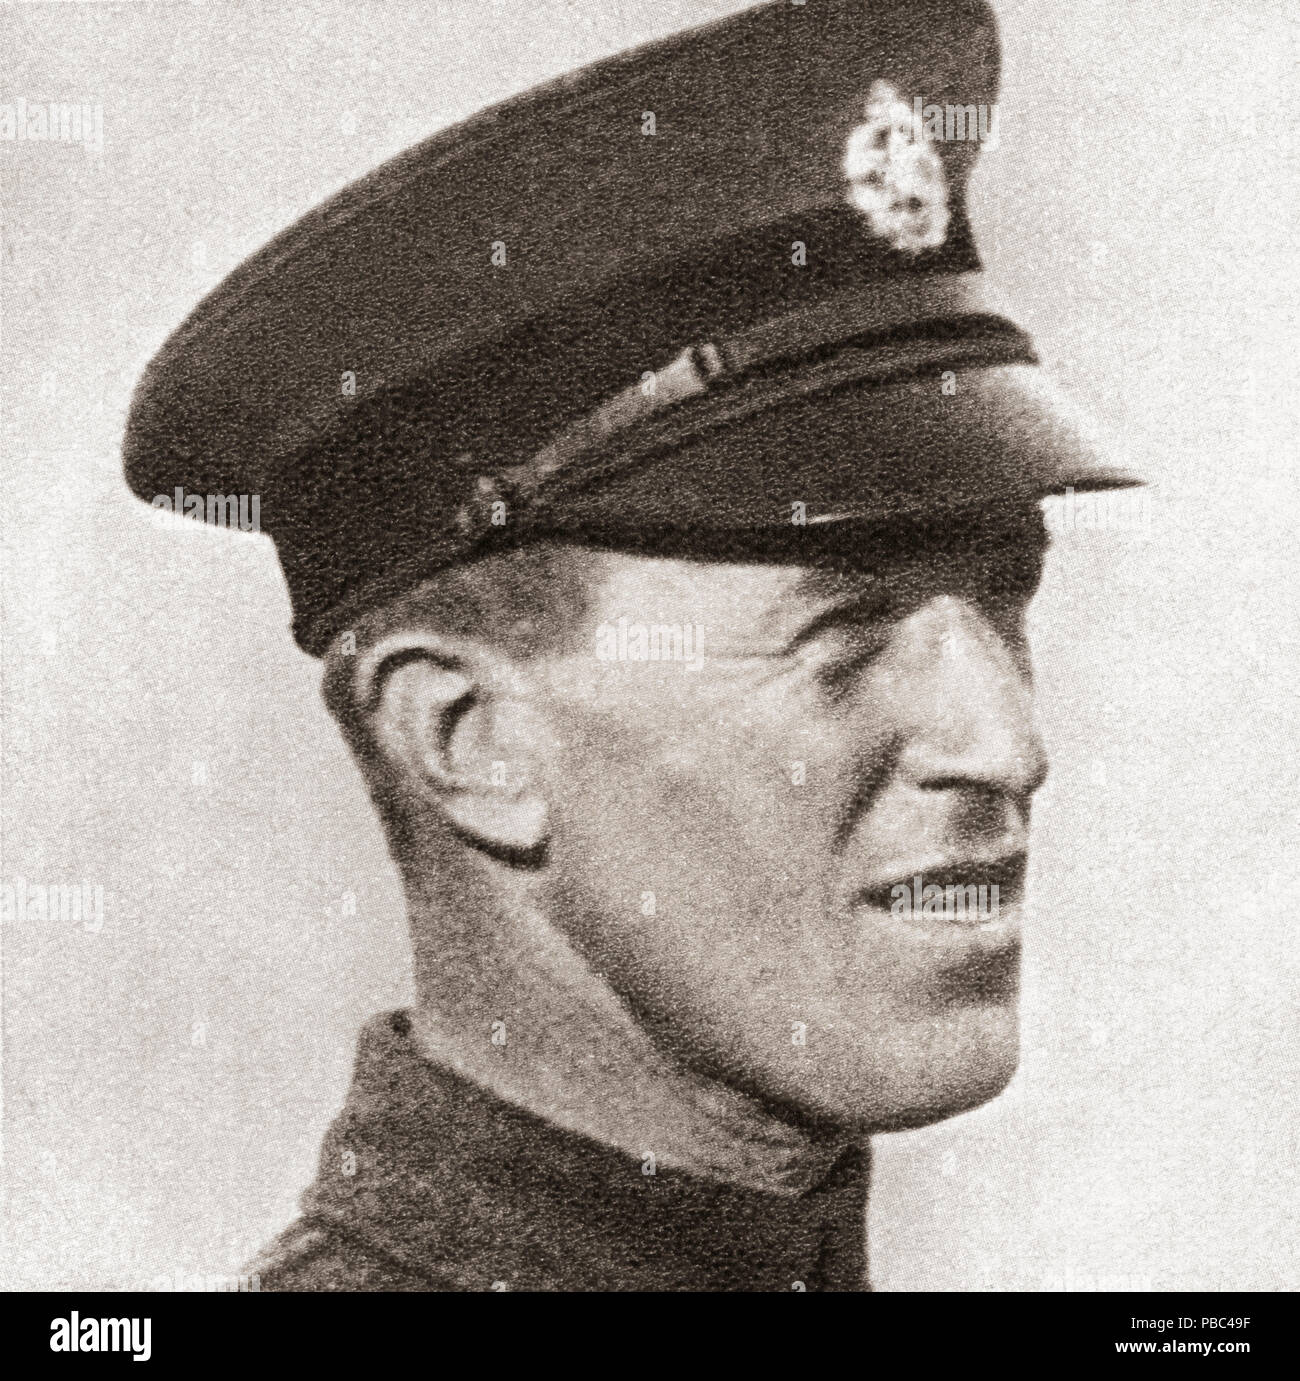 Colonel Thomas Edward Lawrence, CB, DSO, 1888 – 1935.  British archaeologist, military officer, diplomat, and writer.  Seen here whilst a mechanic in the Royal Air Force under the name of Aircraftsman Shaw.  After a photograph taken by Harry Chase, b. 1883. From These Tremendous Years, published 1938. - Stock Image